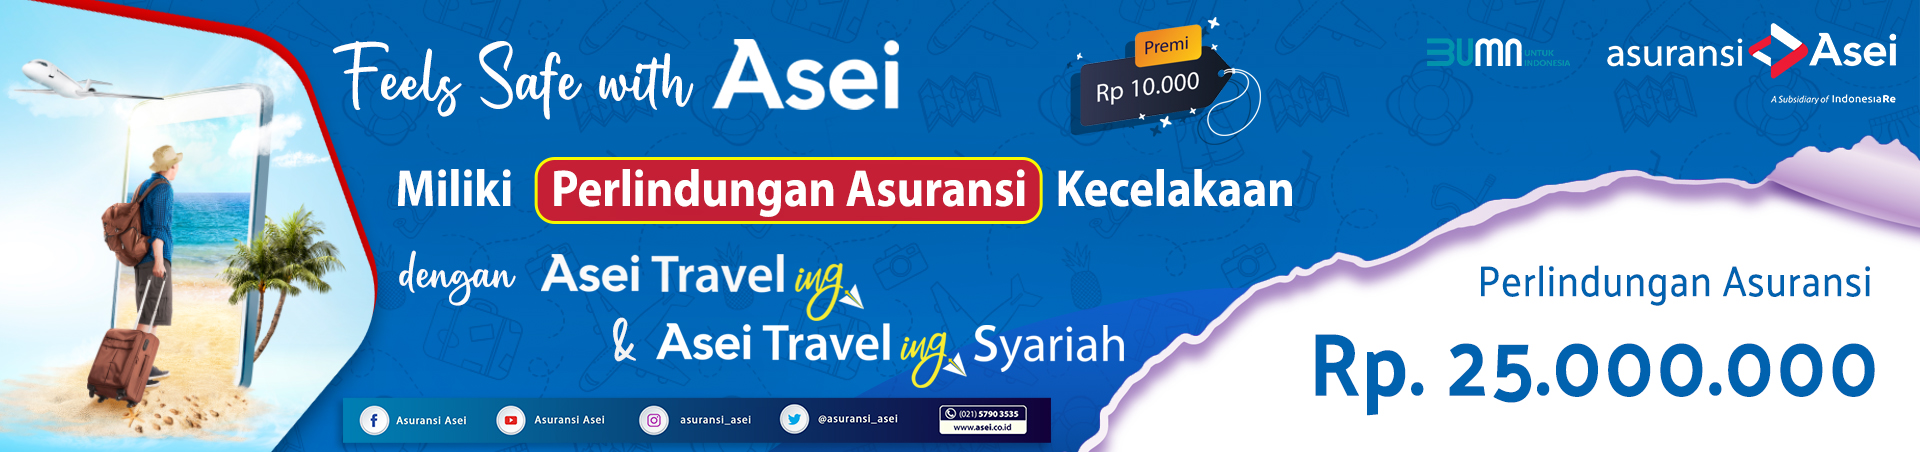 Asei Travel